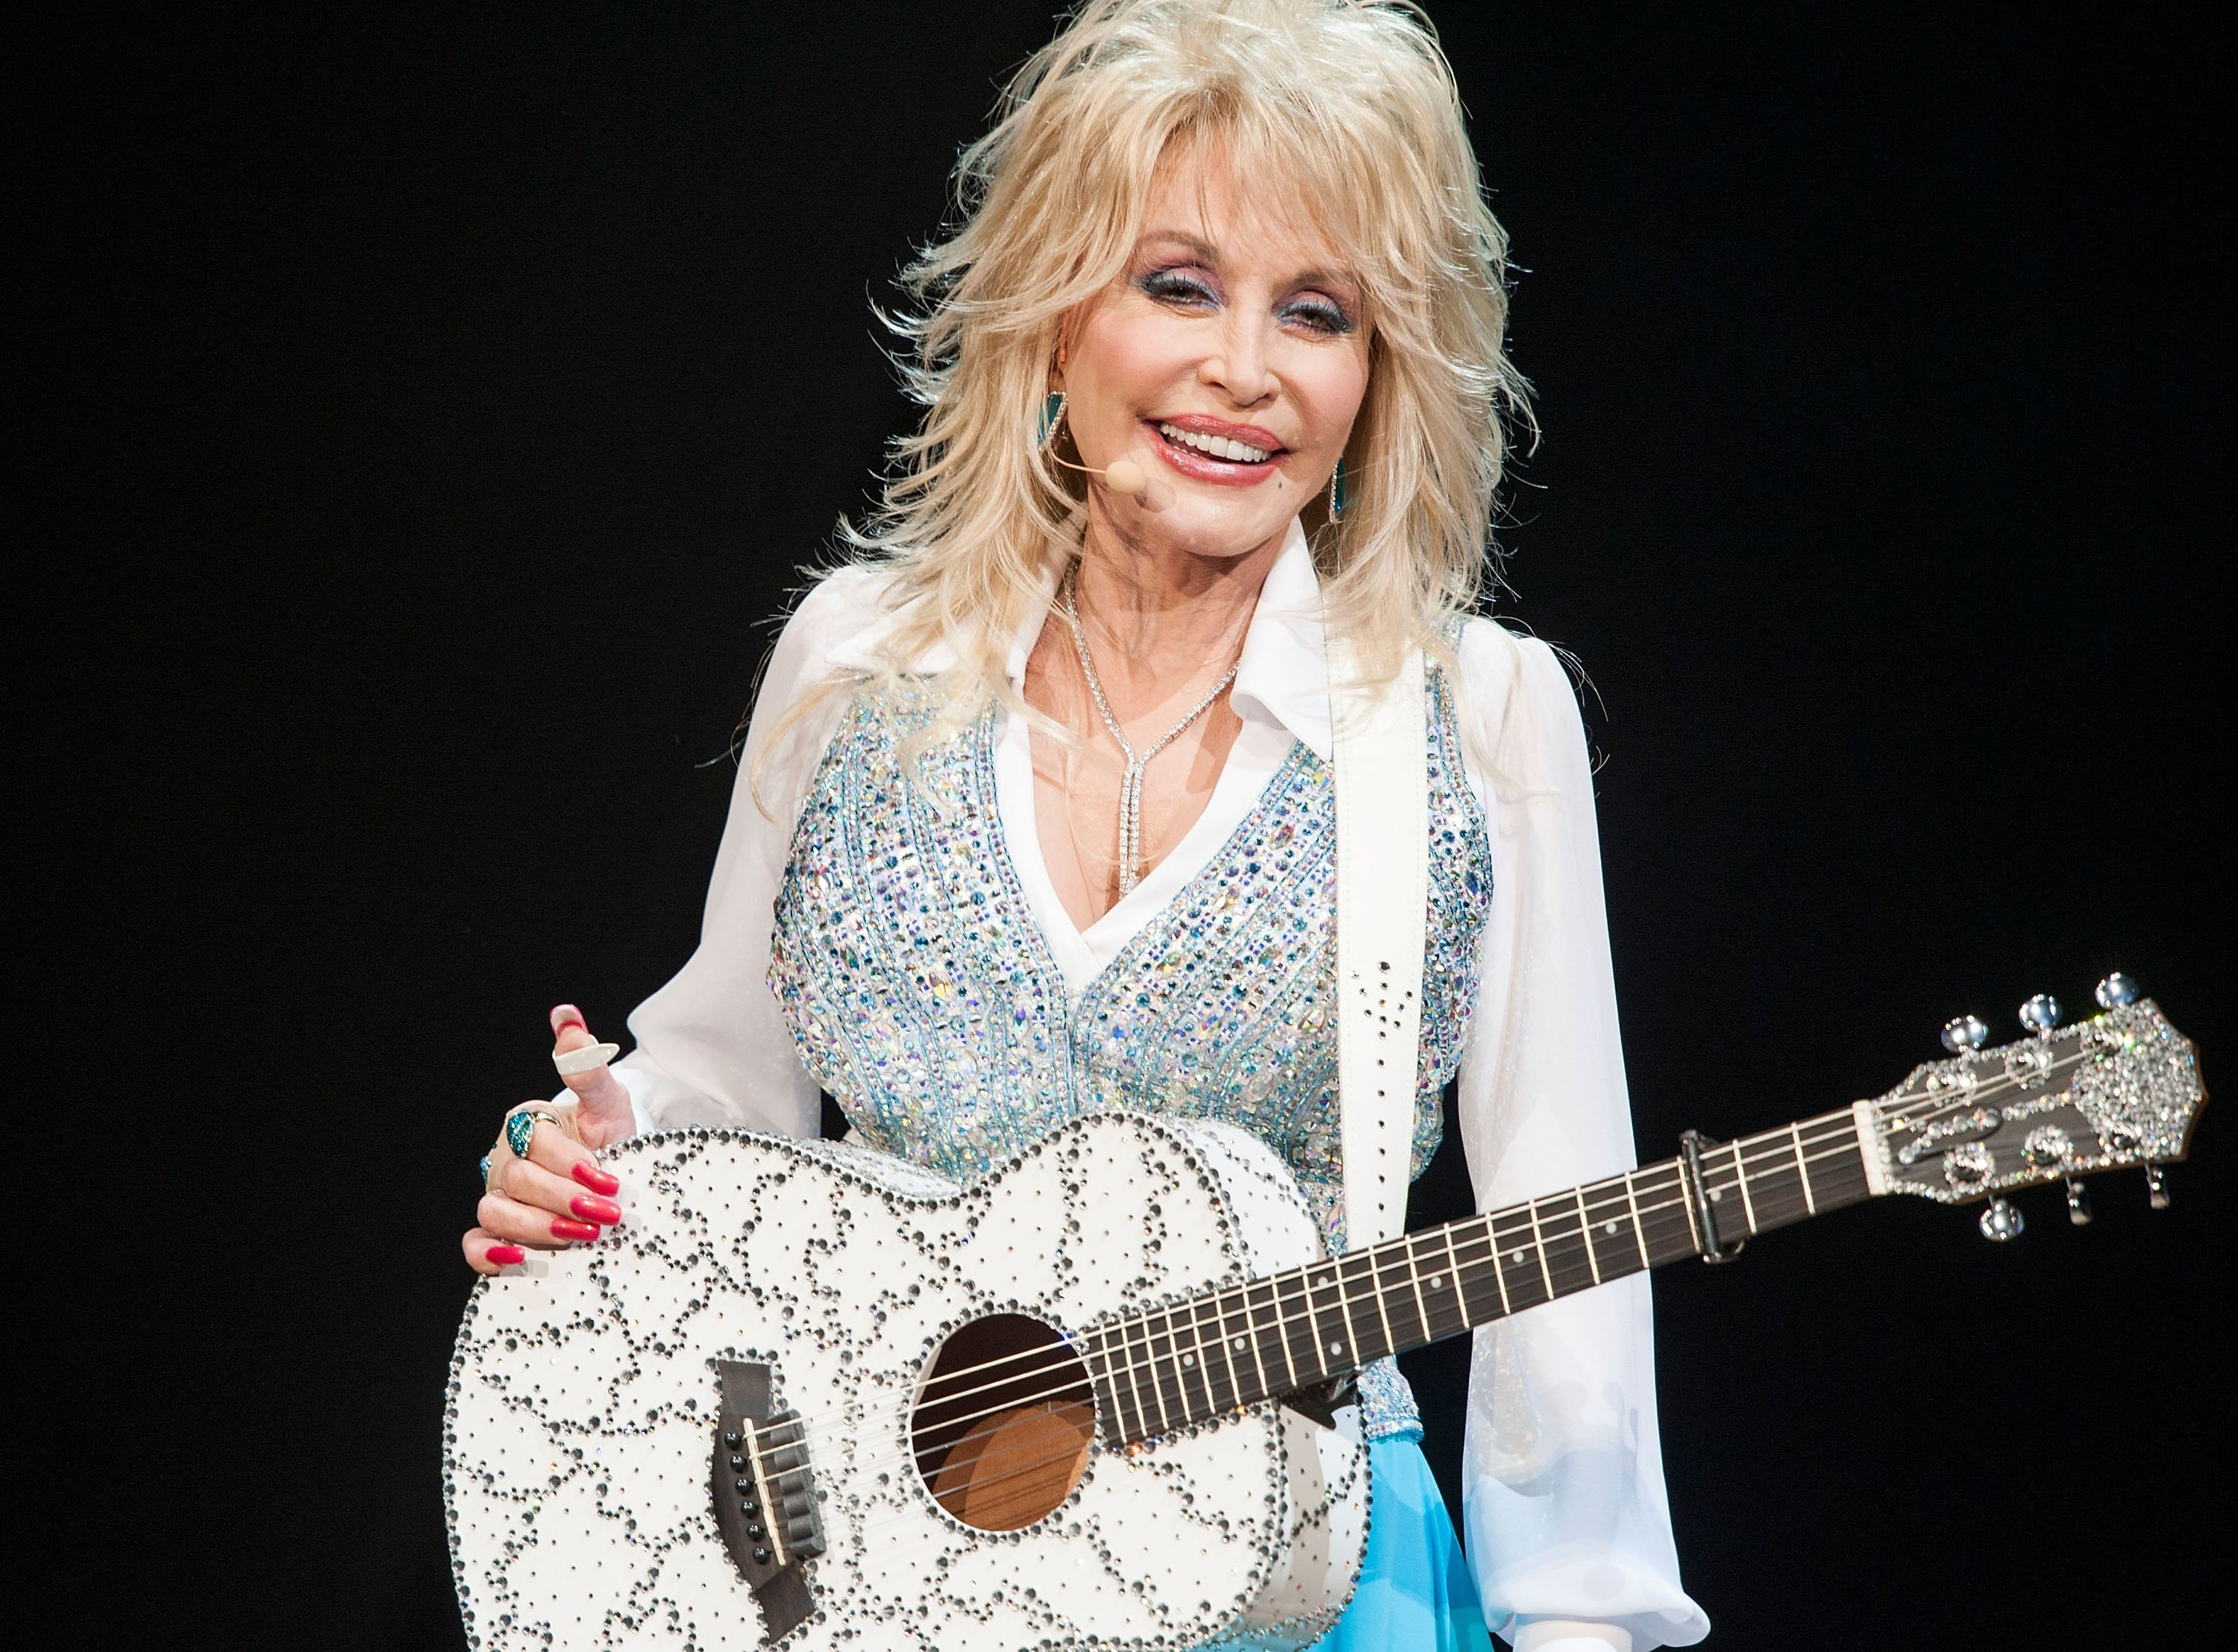 Singer Dolly Parton Performs at Agua Caliente Casino on January 24, 2014| Photo: Getty Images